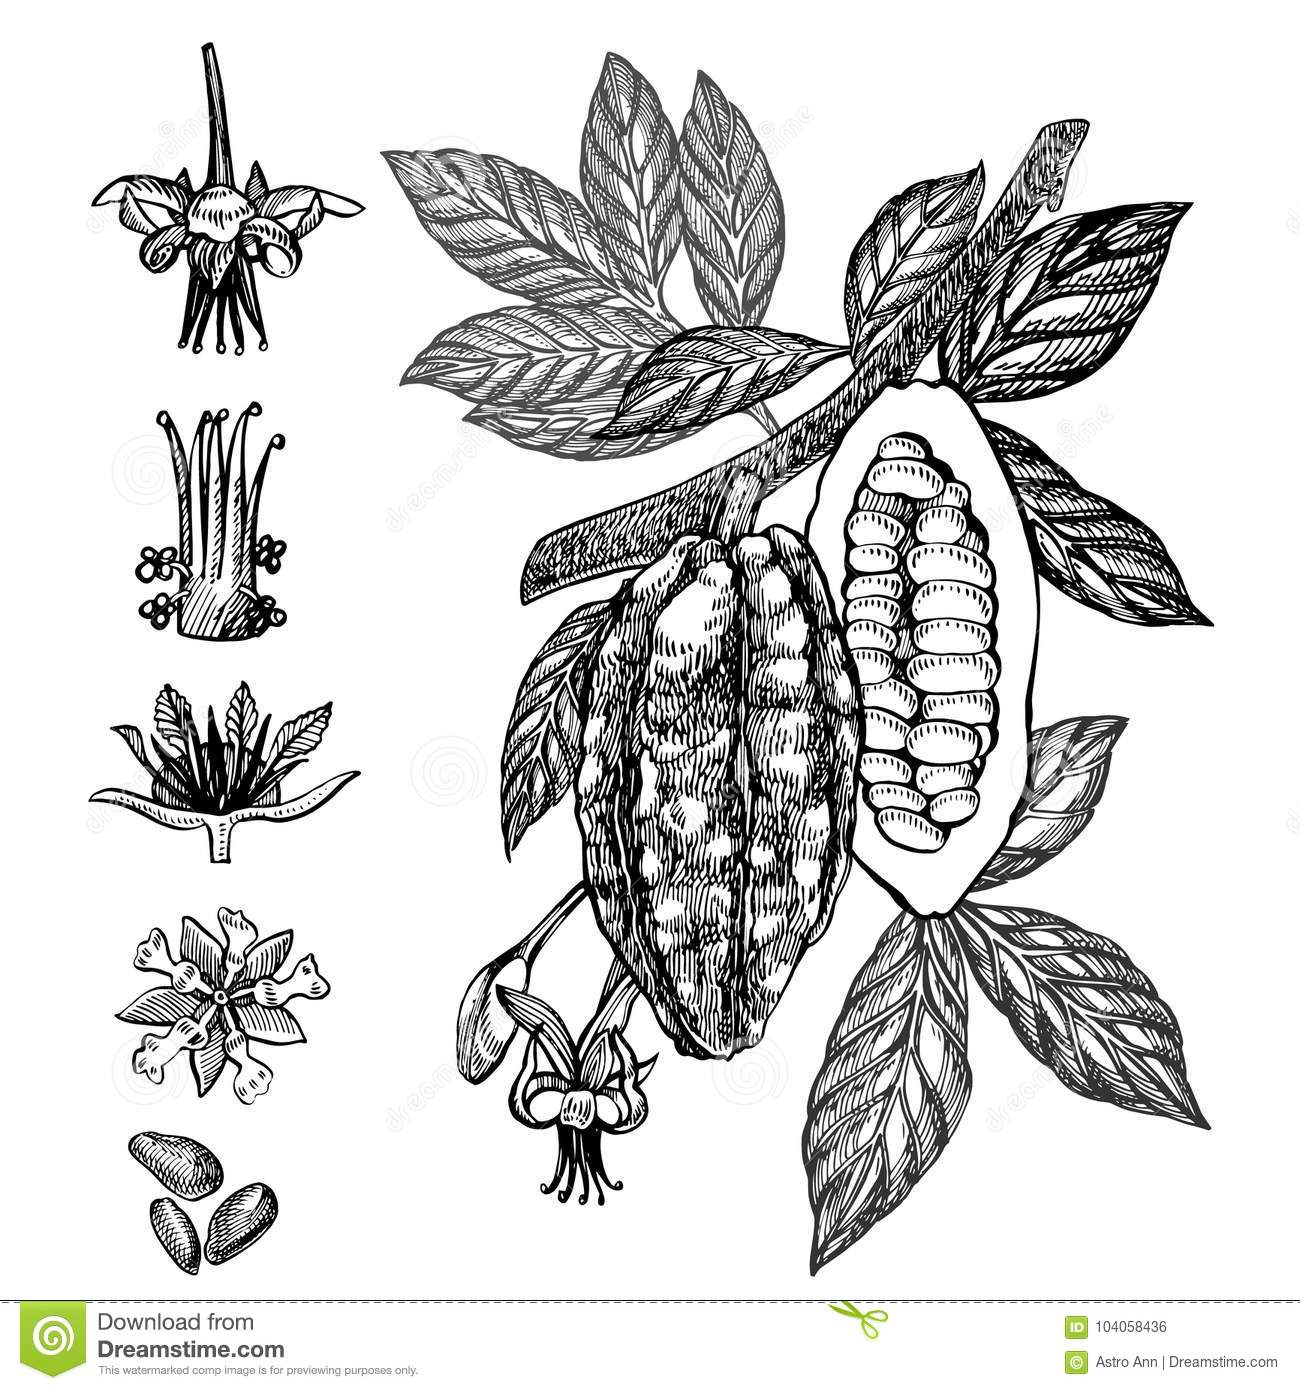 Cacao Tree Stock Illustrations 2 197 Cacao Tree Stock Illustrations Vectors Clipart Dreamstime